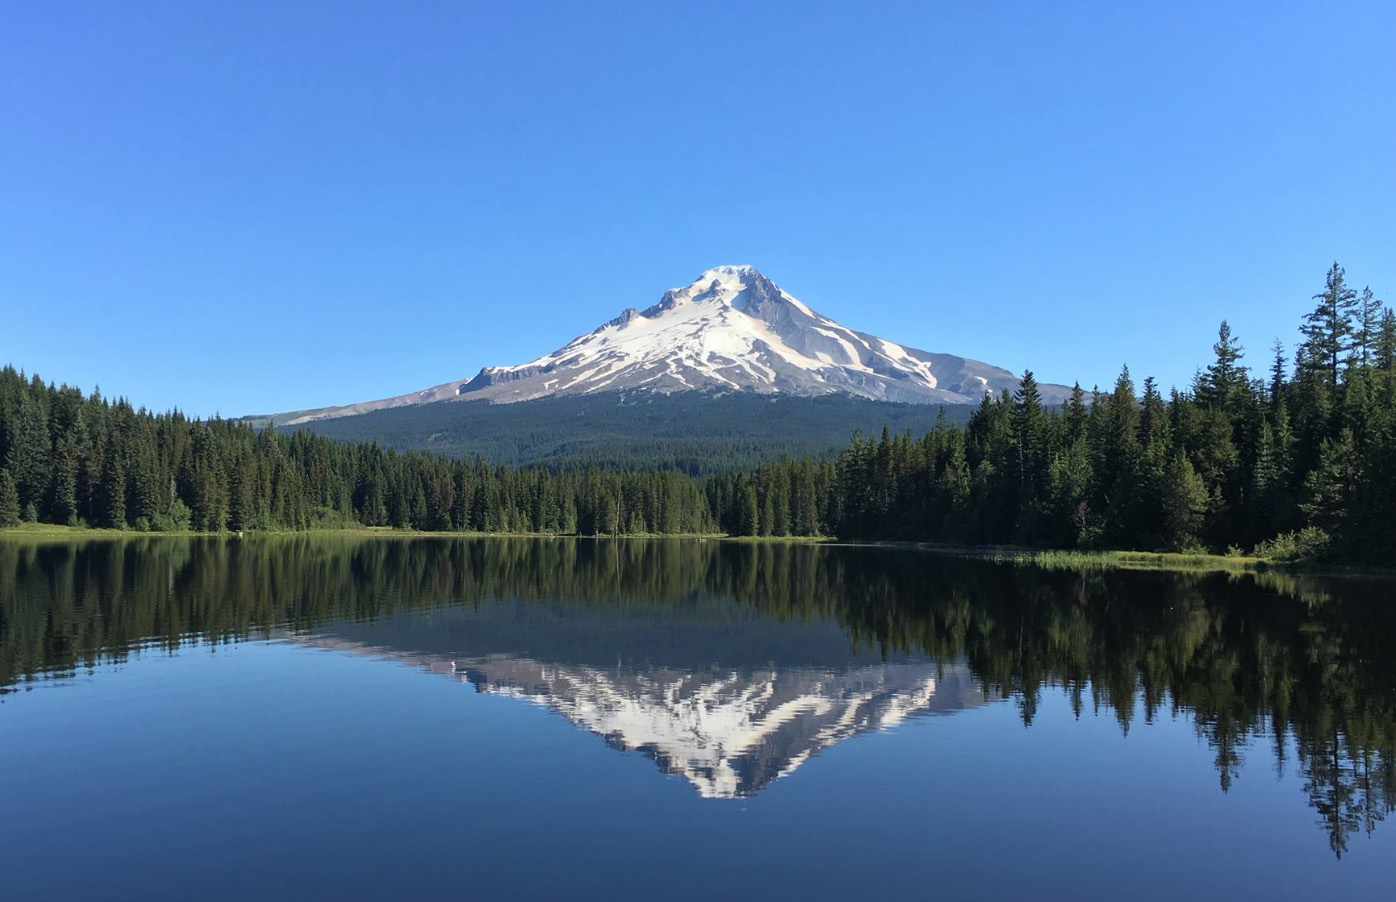 Kylie Brooks/U.S. Forest Service/Mt. Hood National Forest